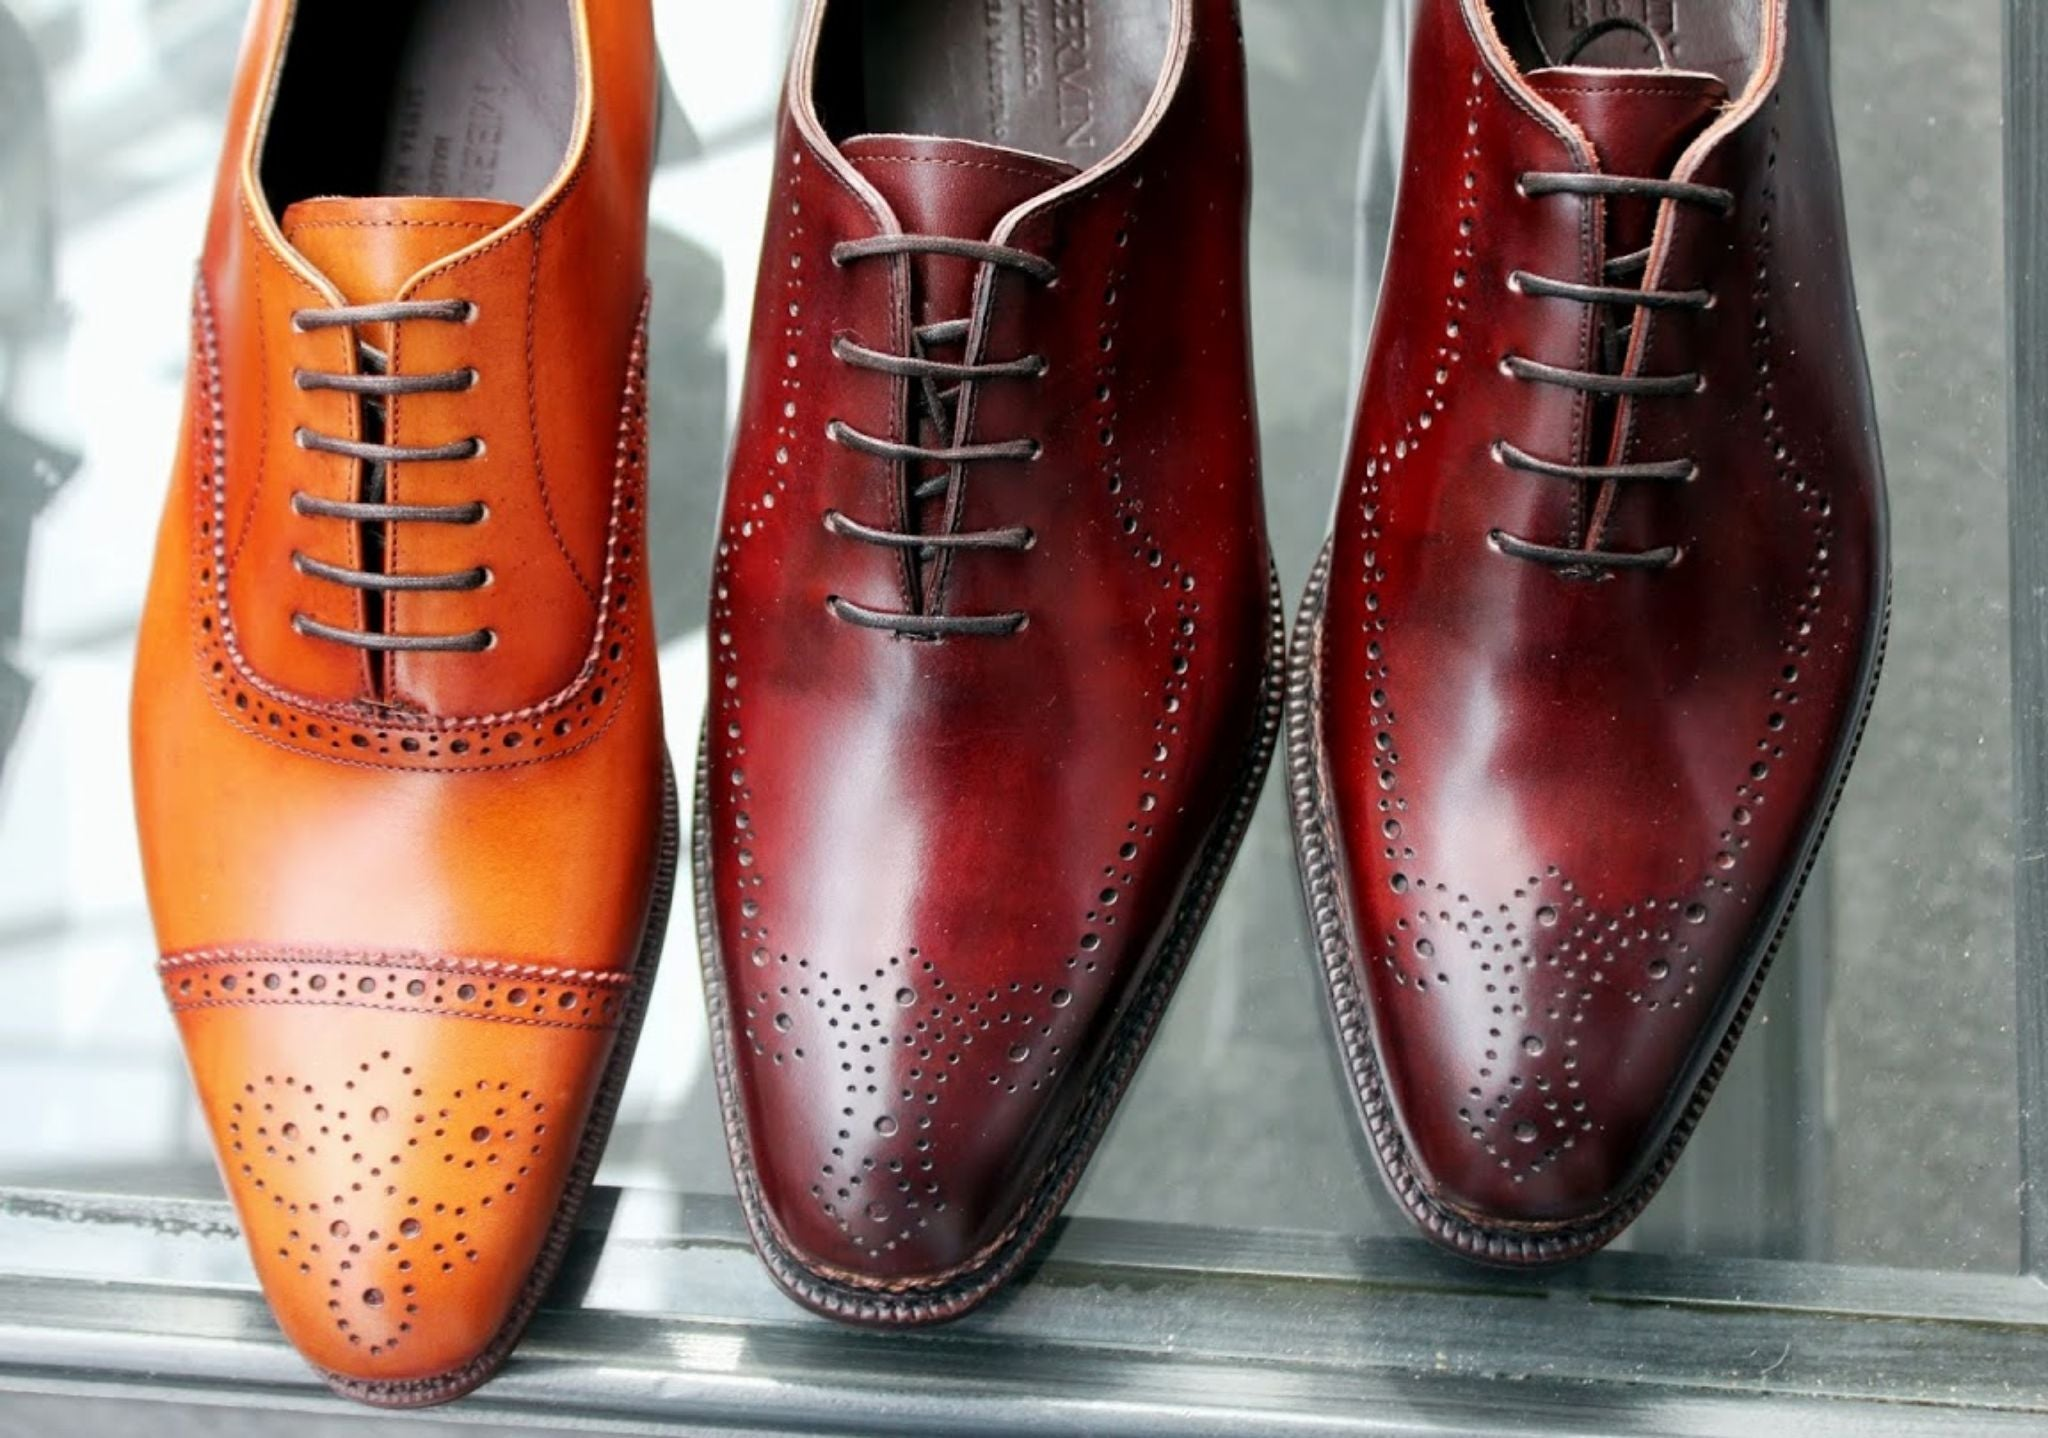 Meermin shoes - New Ray last